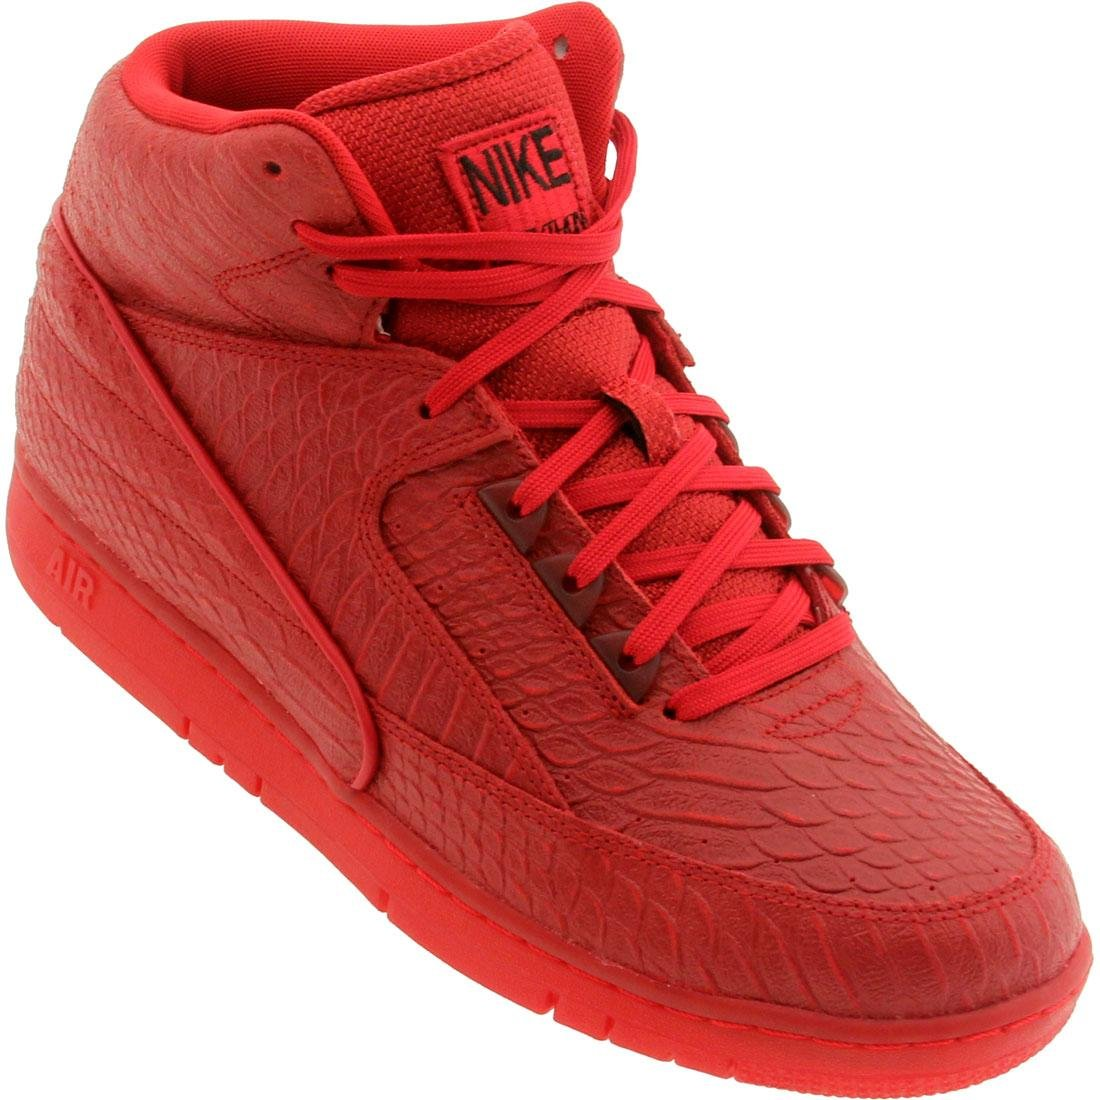 Buy Red NIKE AIR PYTHON